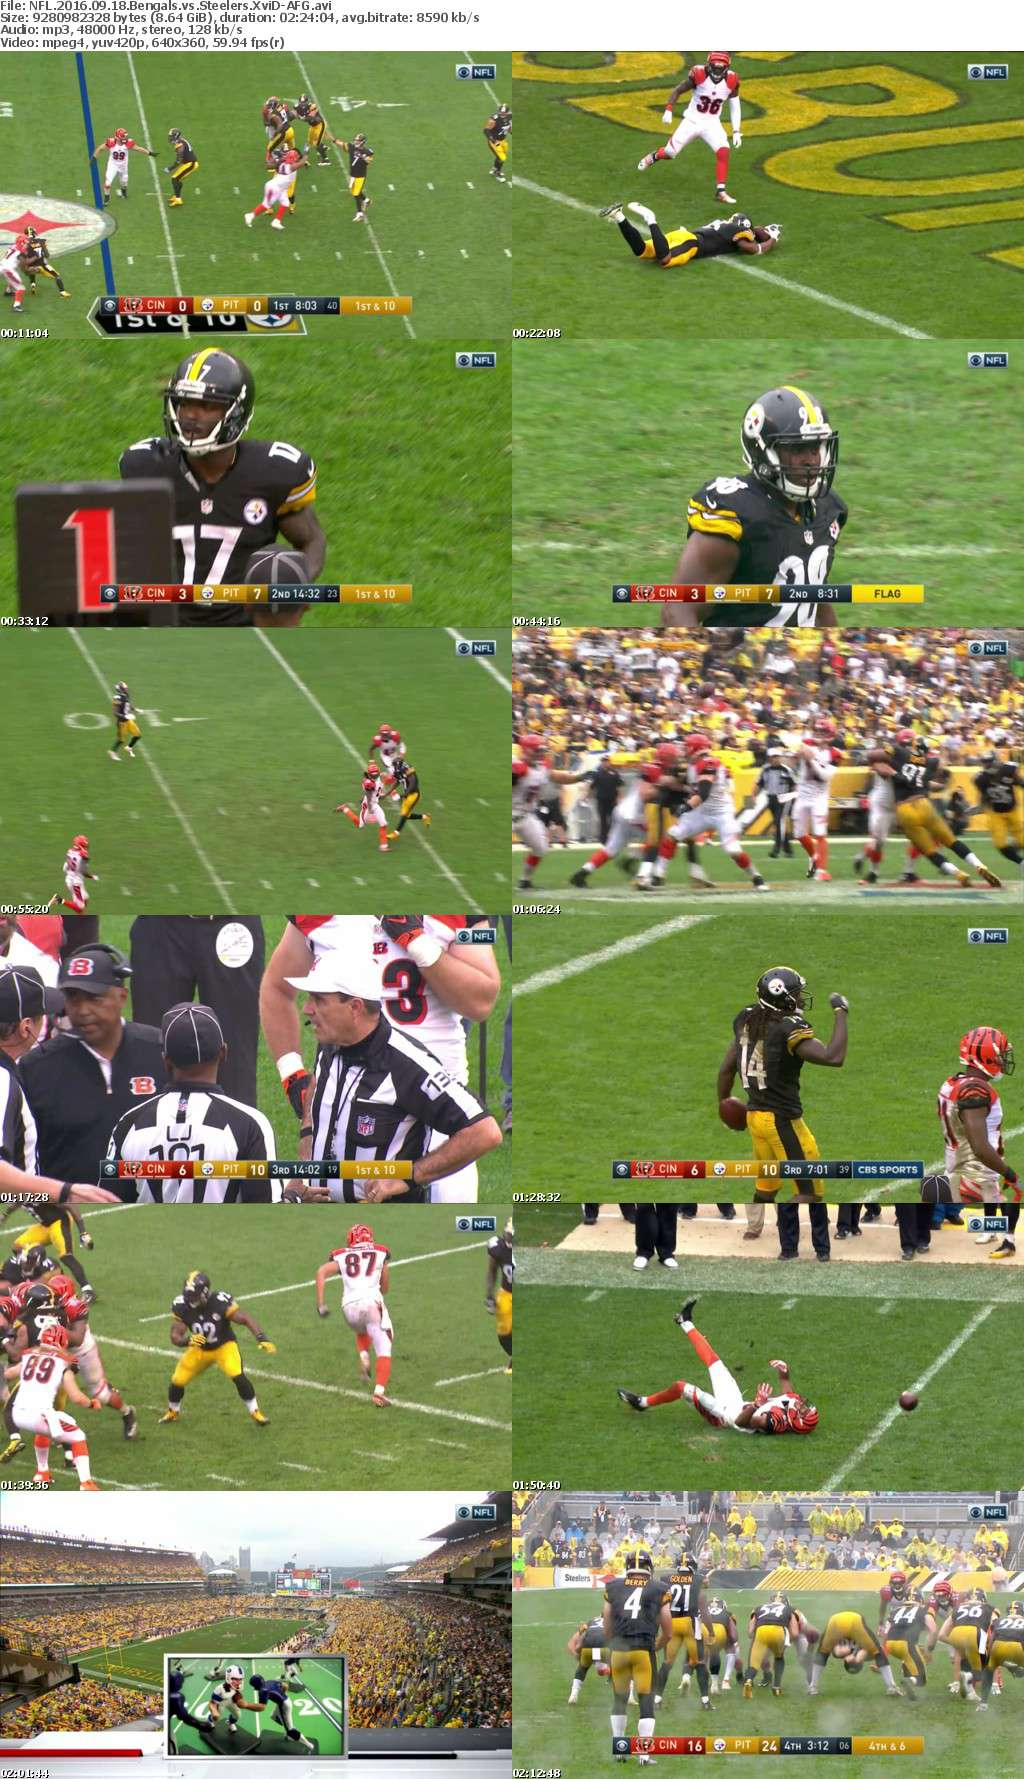 NFL 2016 09 18 Bengals vs Steelers XviD-AFG